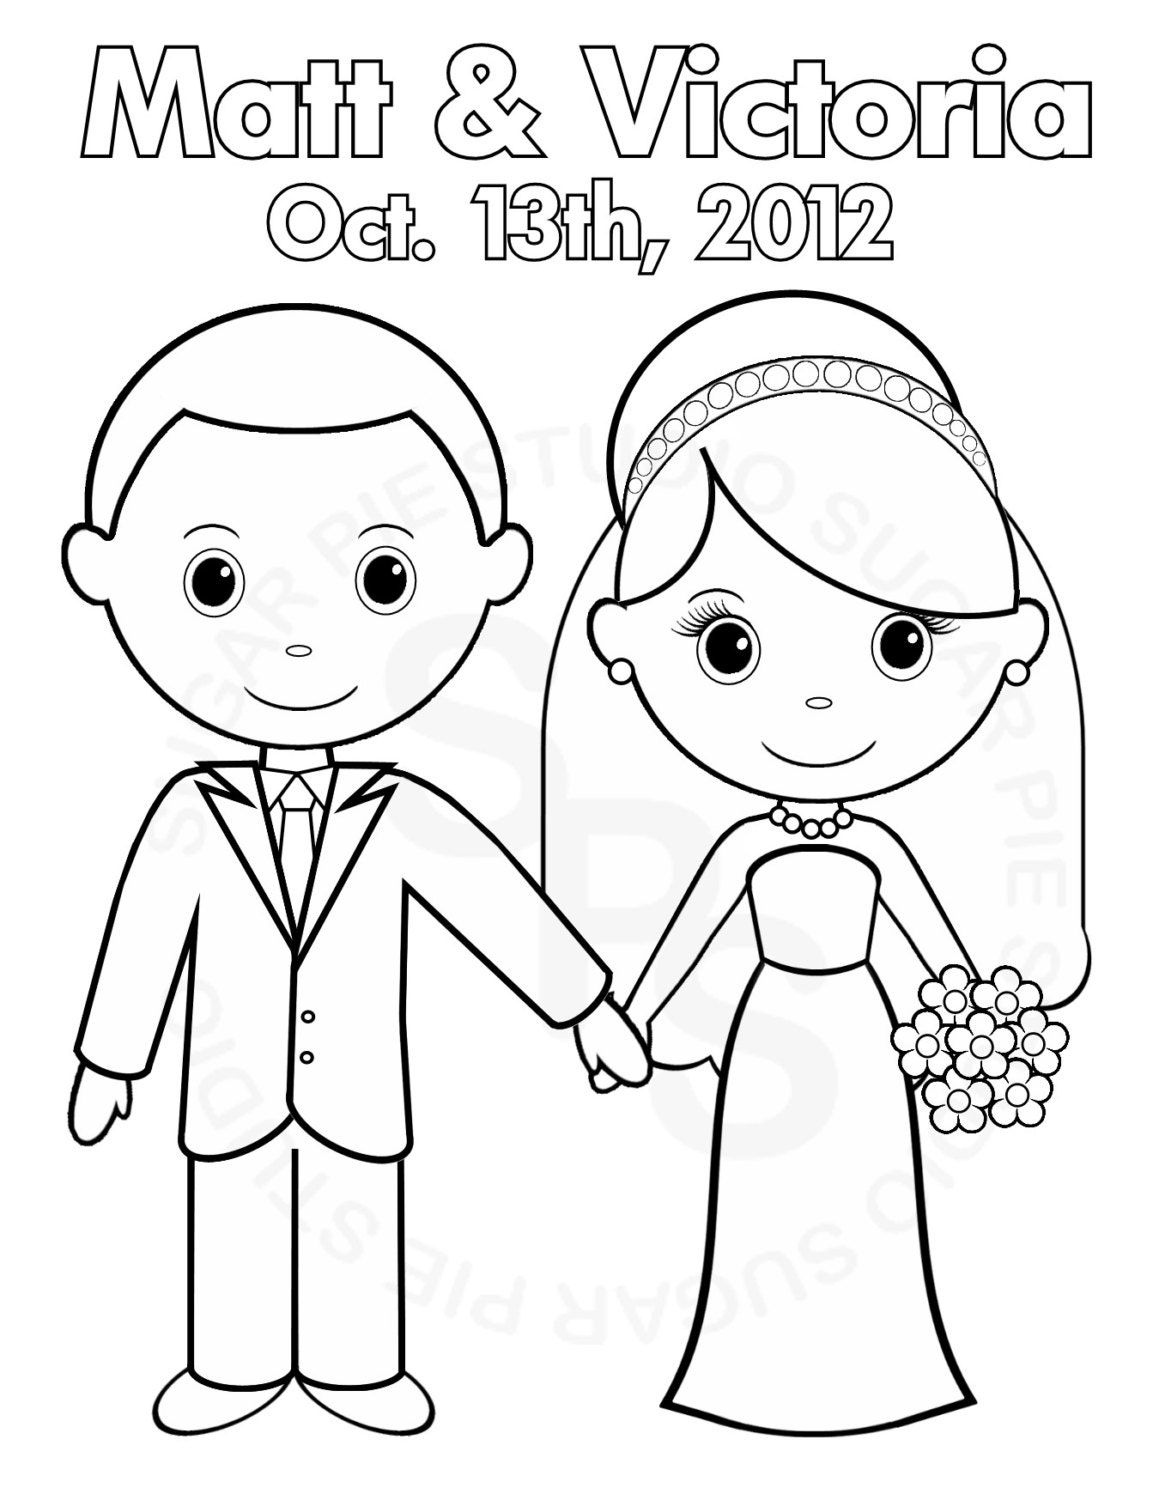 personalized coloring pages - photo#22